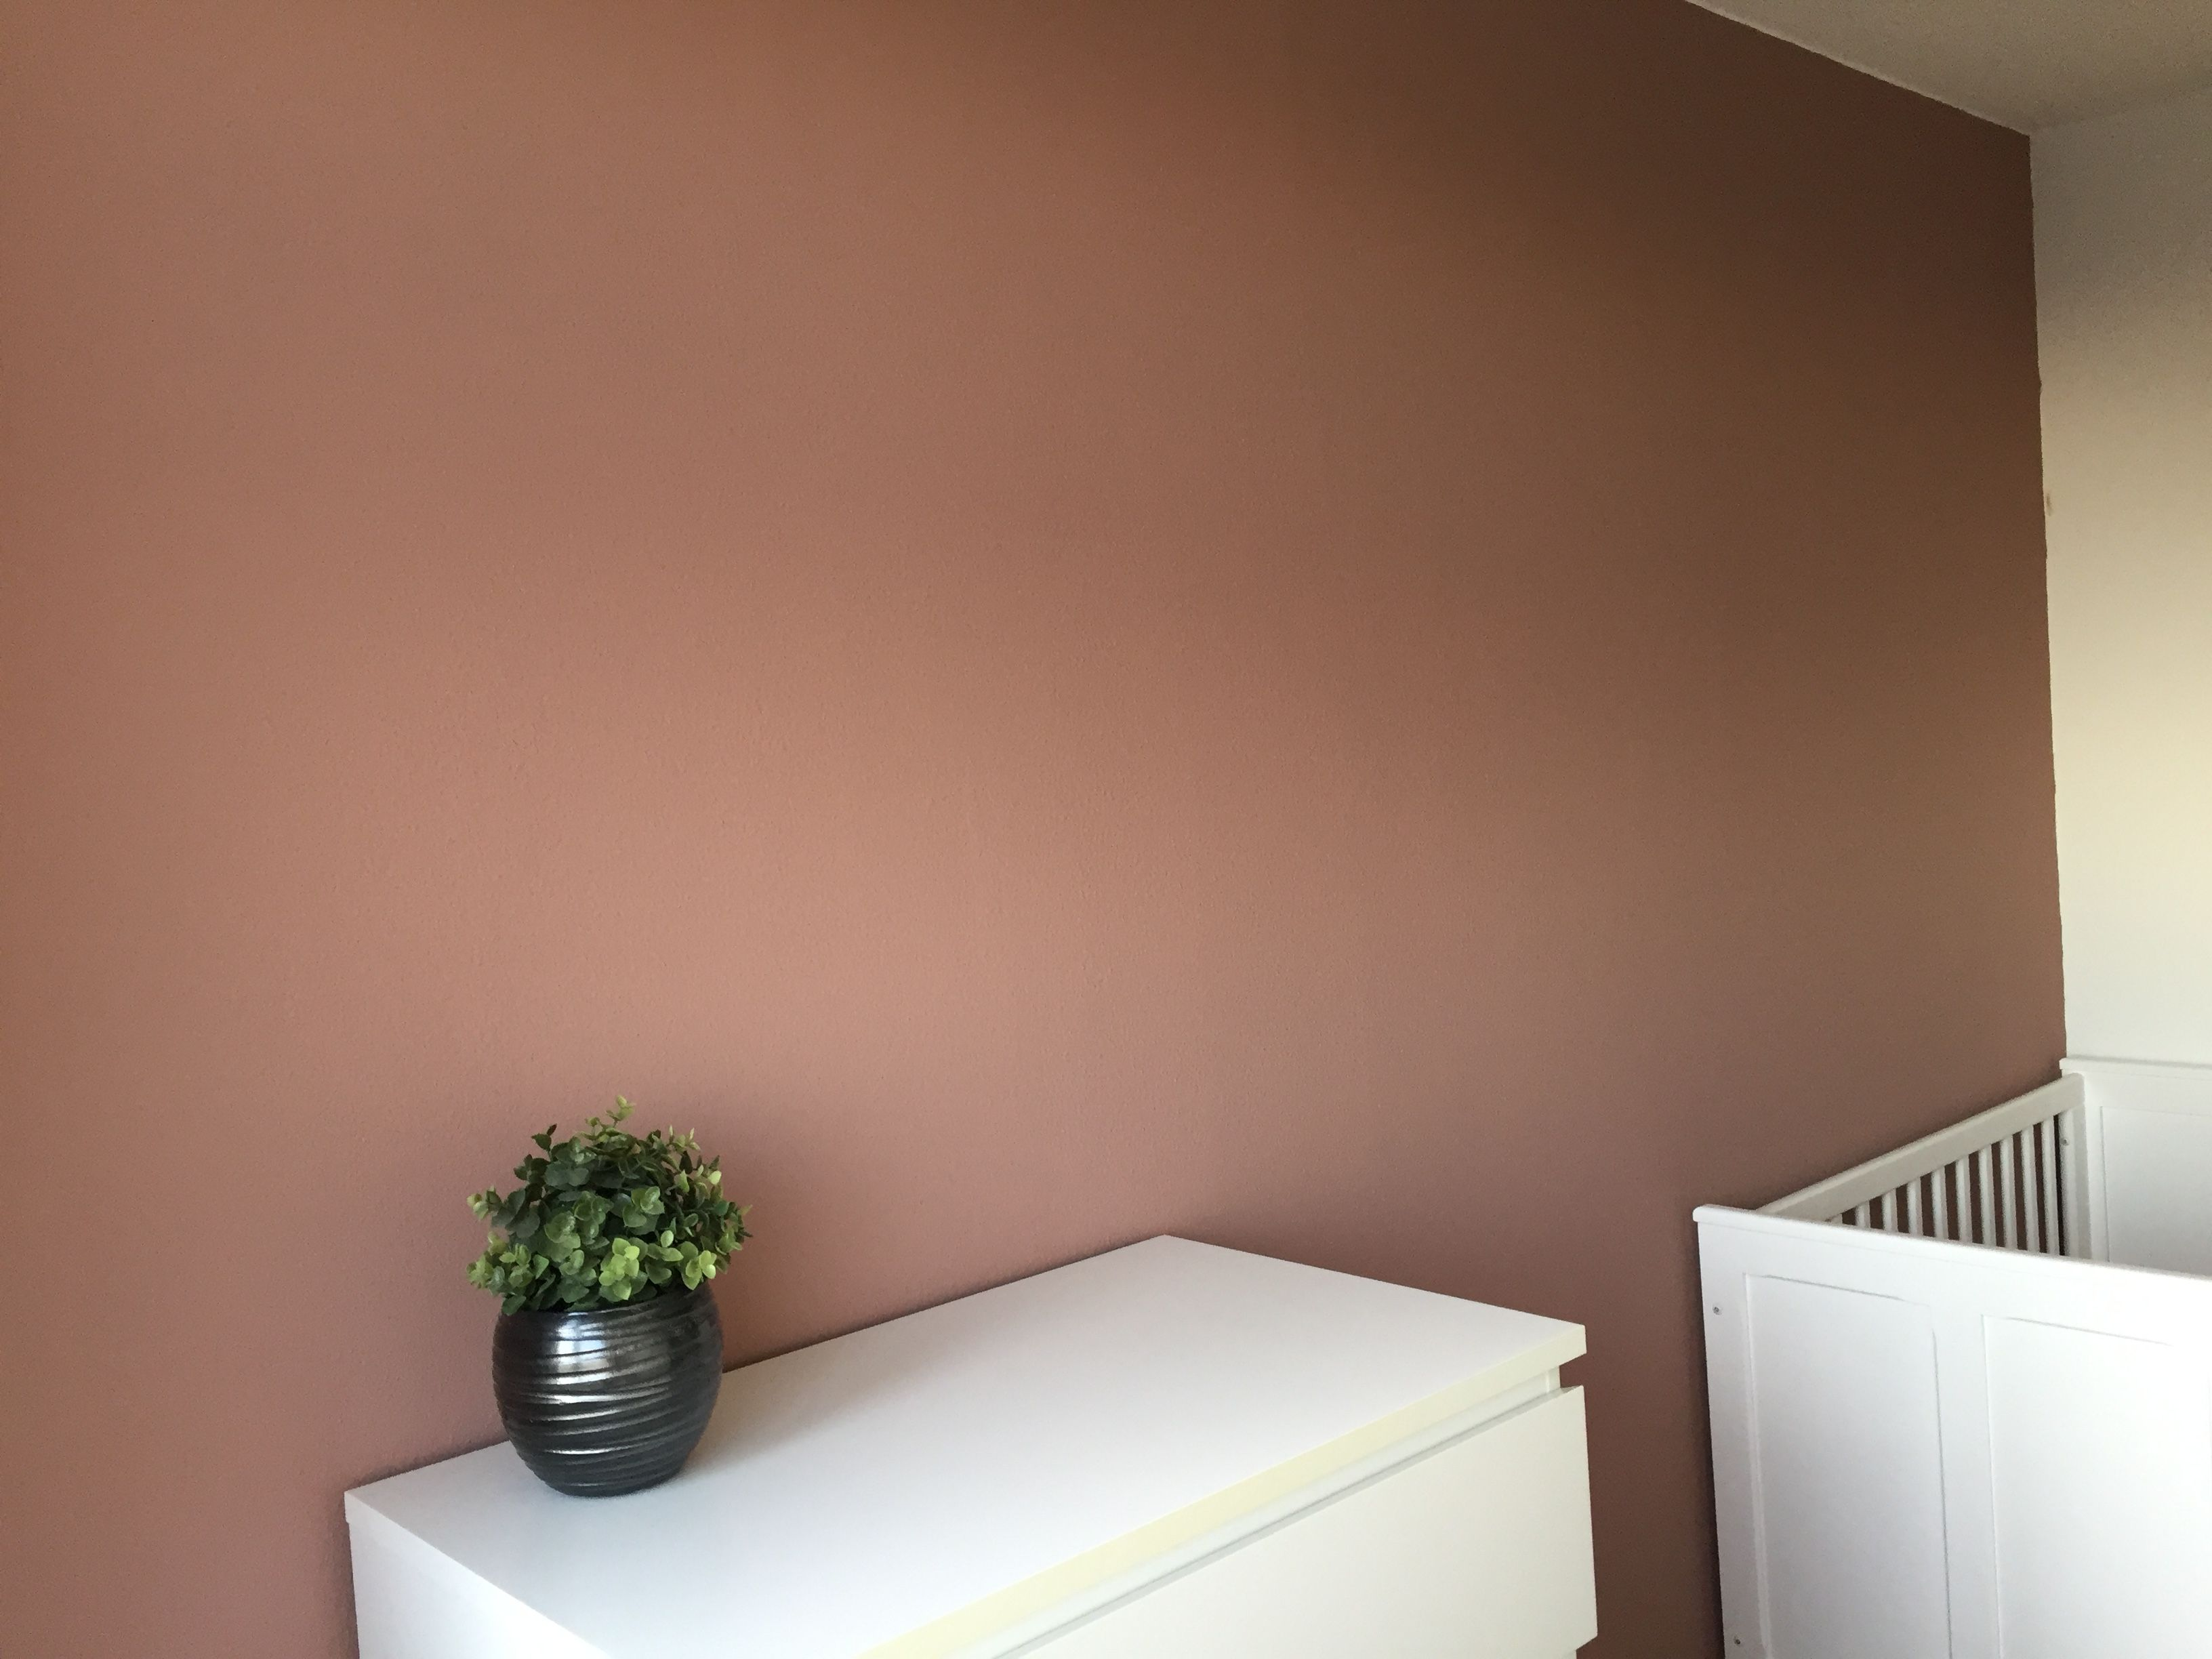 Aardetinten Muurverf Vt Wonen Soft Clay Muurverf Dog Mudroom In 2019 Muurverf Roze